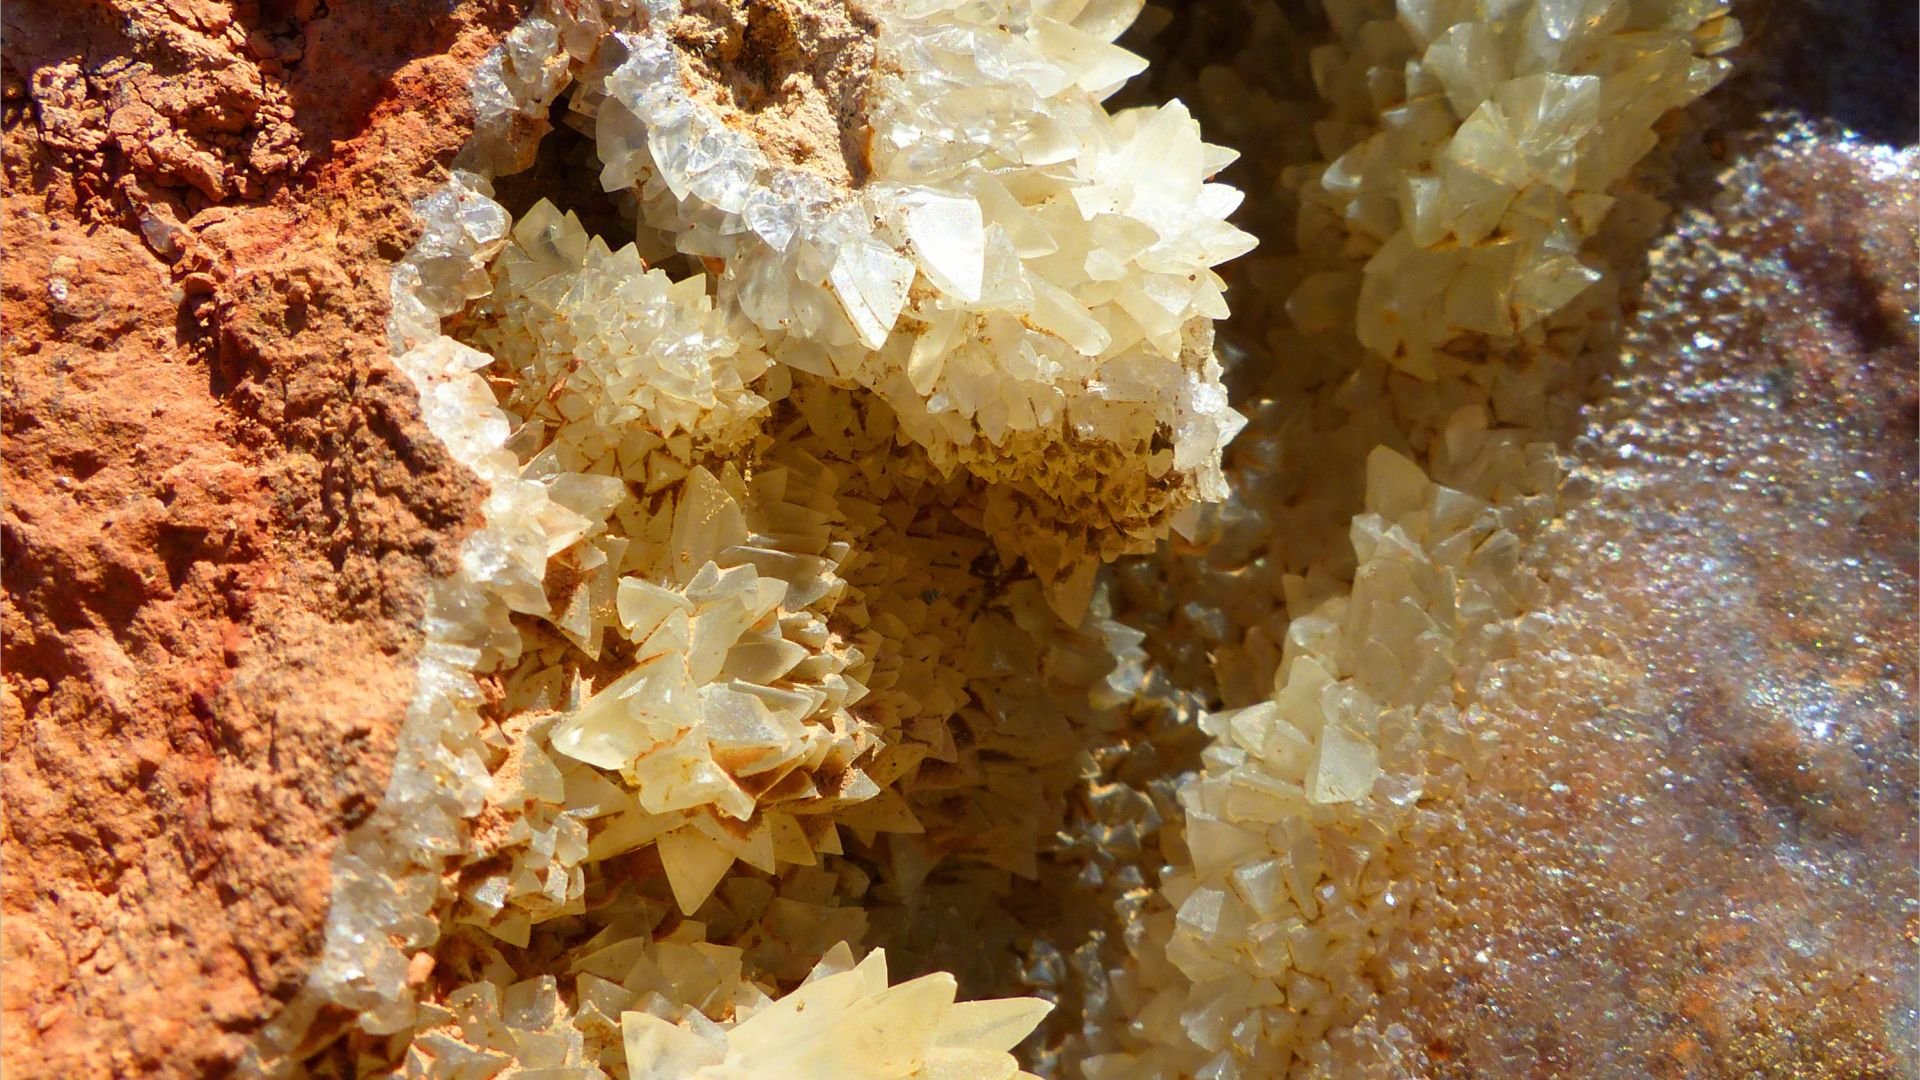 Crystal structure within a beach boulder